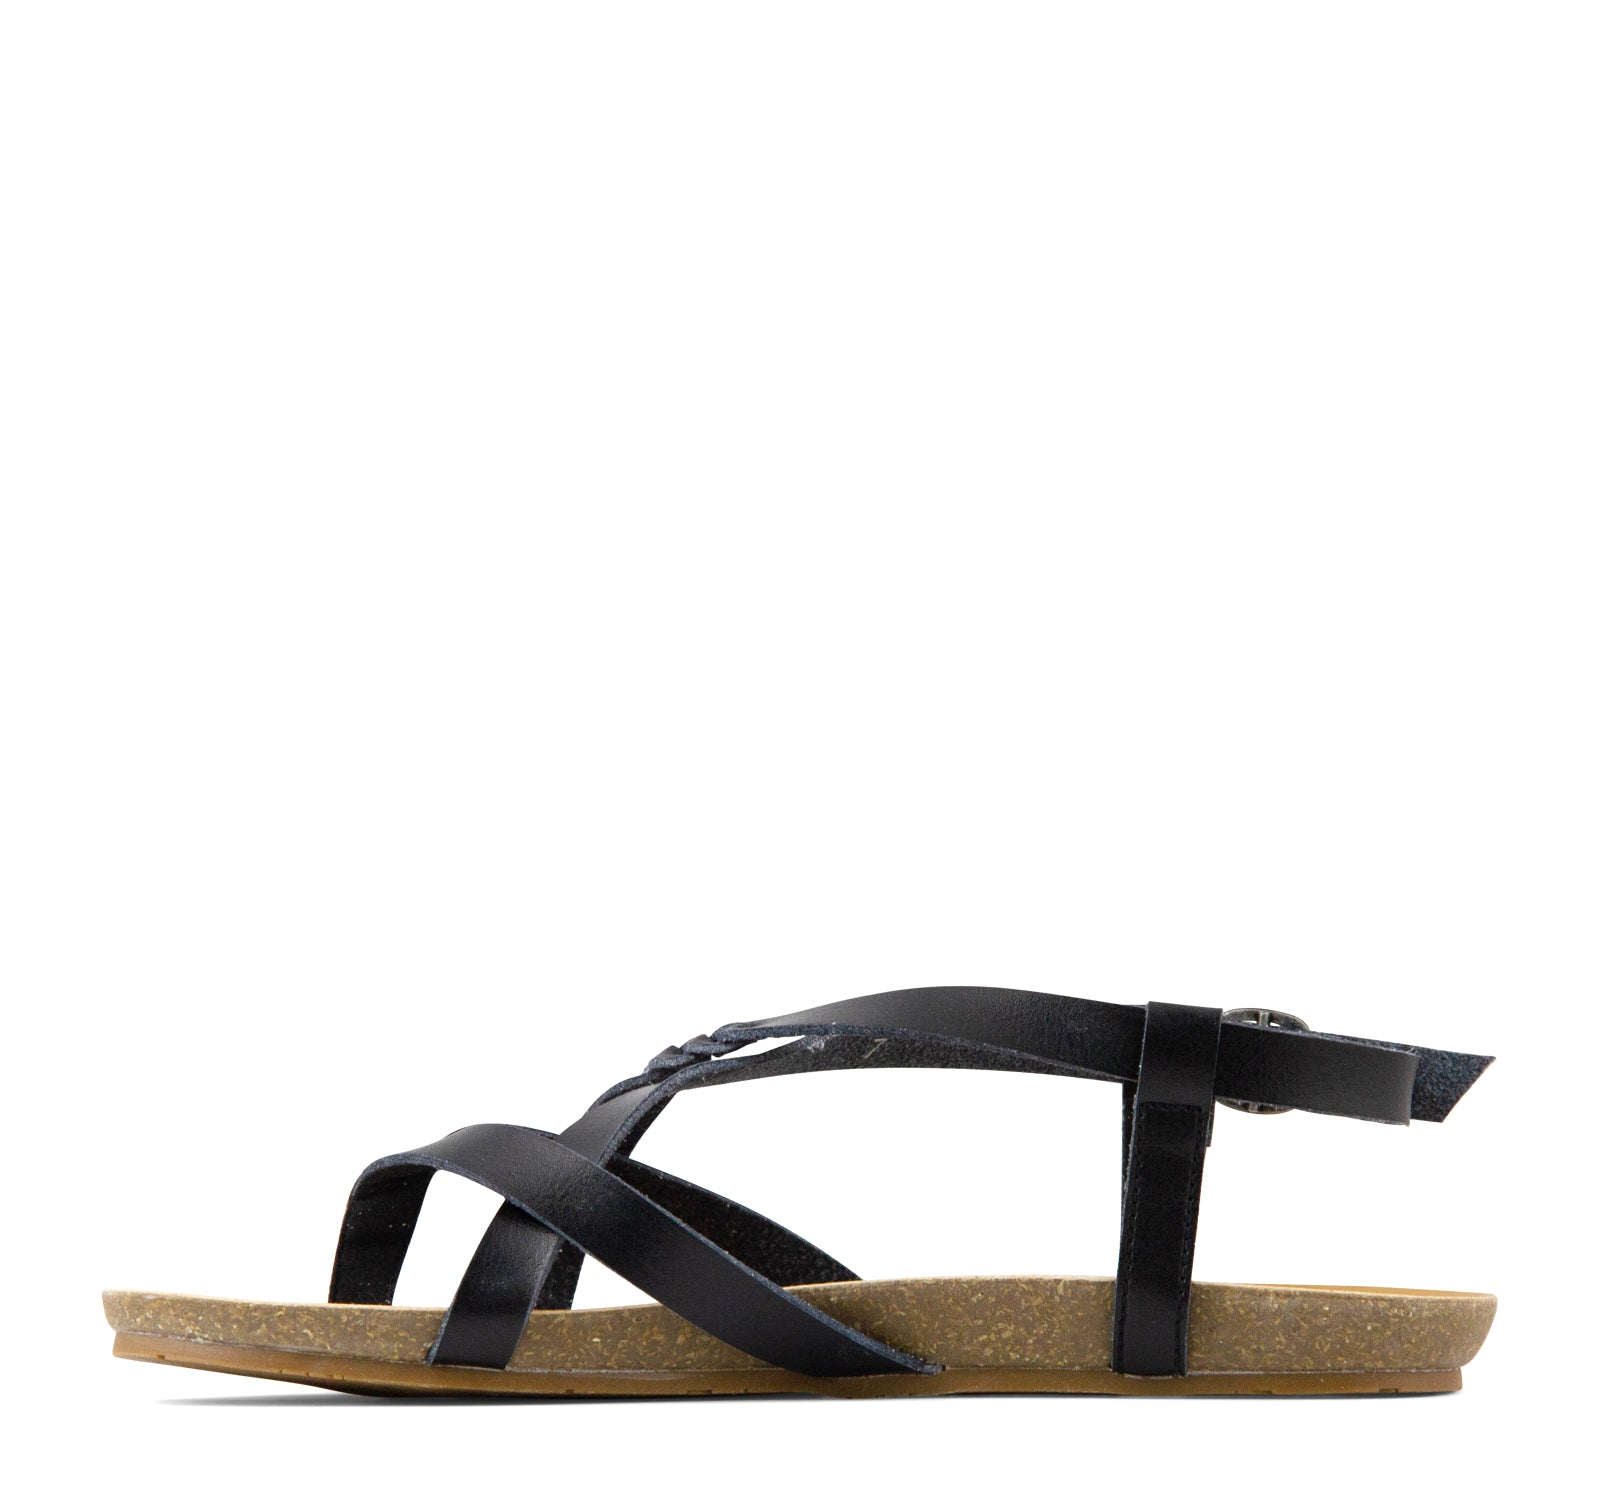 c46f84036f6a ... Blowfish Granola-B Women s Sandal in Black - Blowfish Malibu - On The  EDGE ...